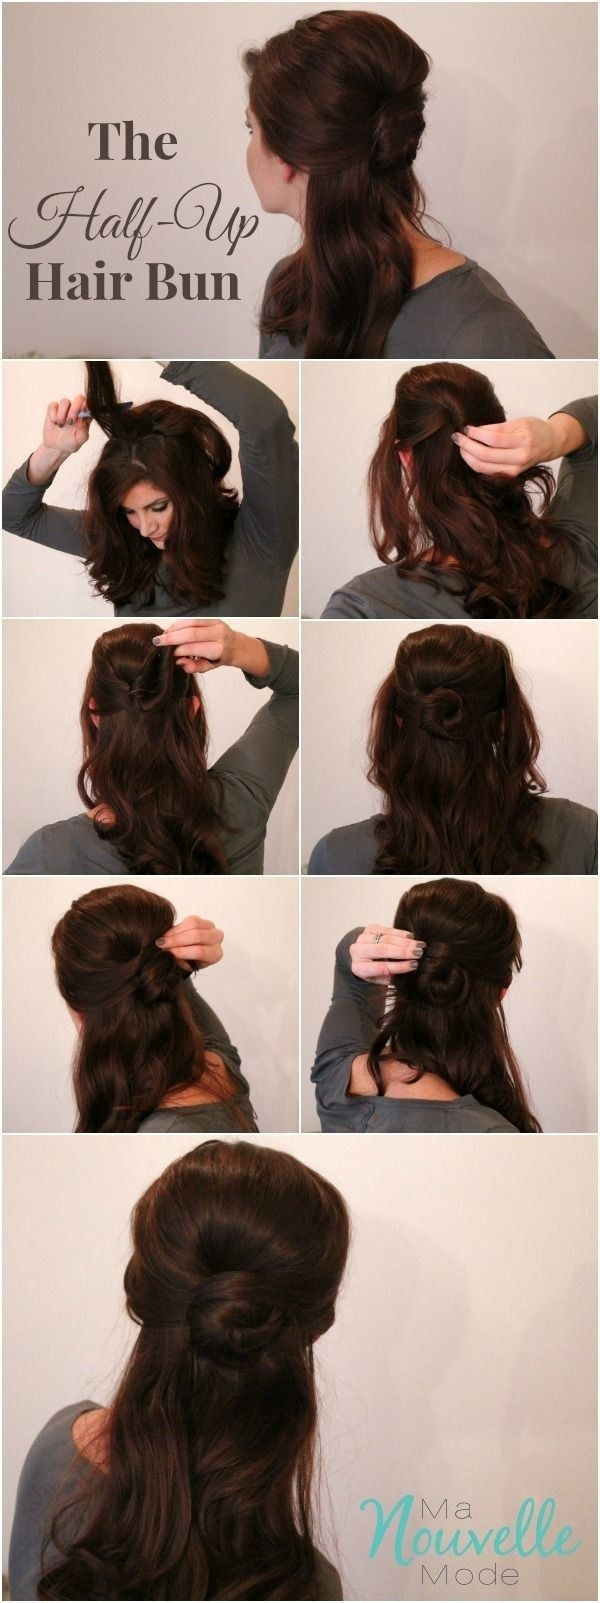 22 Half Up Half Down Hairstyles Easy Step By Step Hair